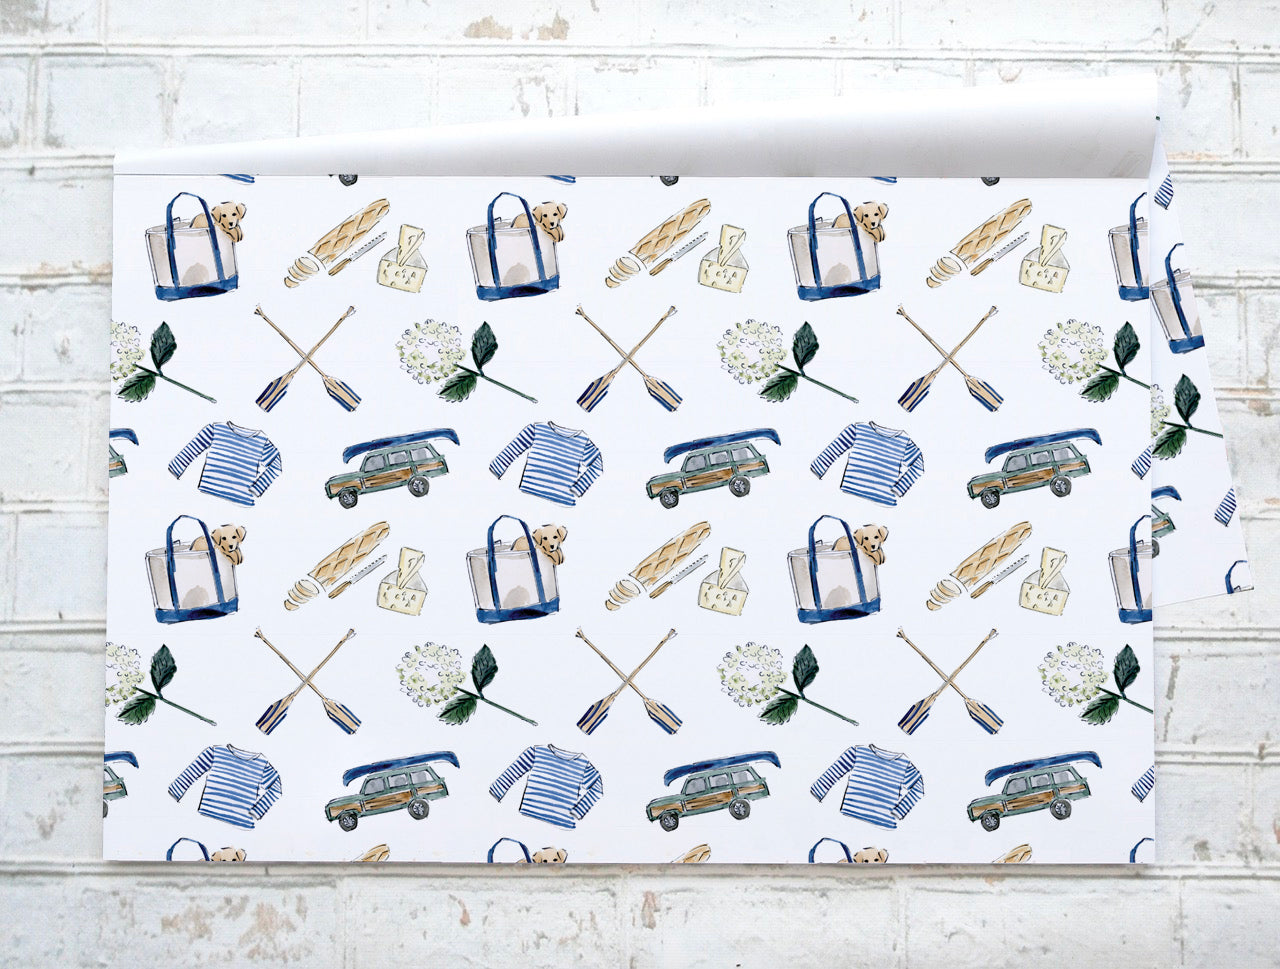 Pique nique au lac - Pic nic at the lake - Napperons de papier - Paper placemats